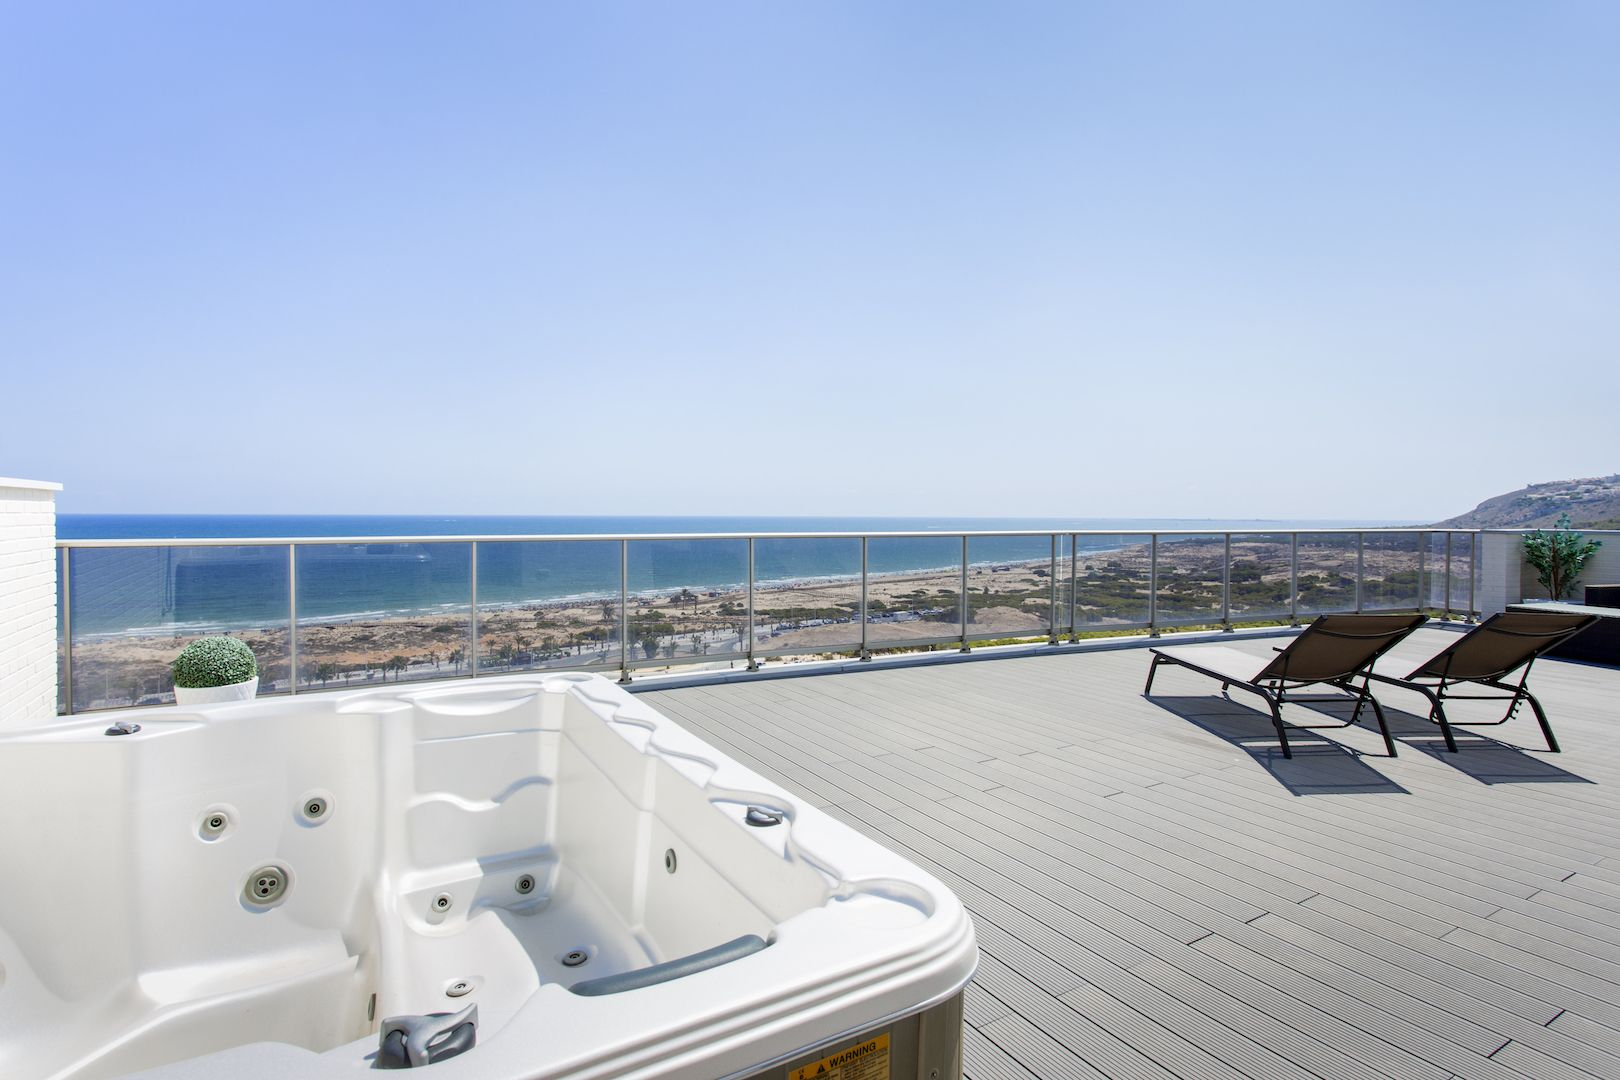 Flats and penthouses of 2, 3 and 4 bedrooms a few meters from the sea in Arenales del Sol. 15